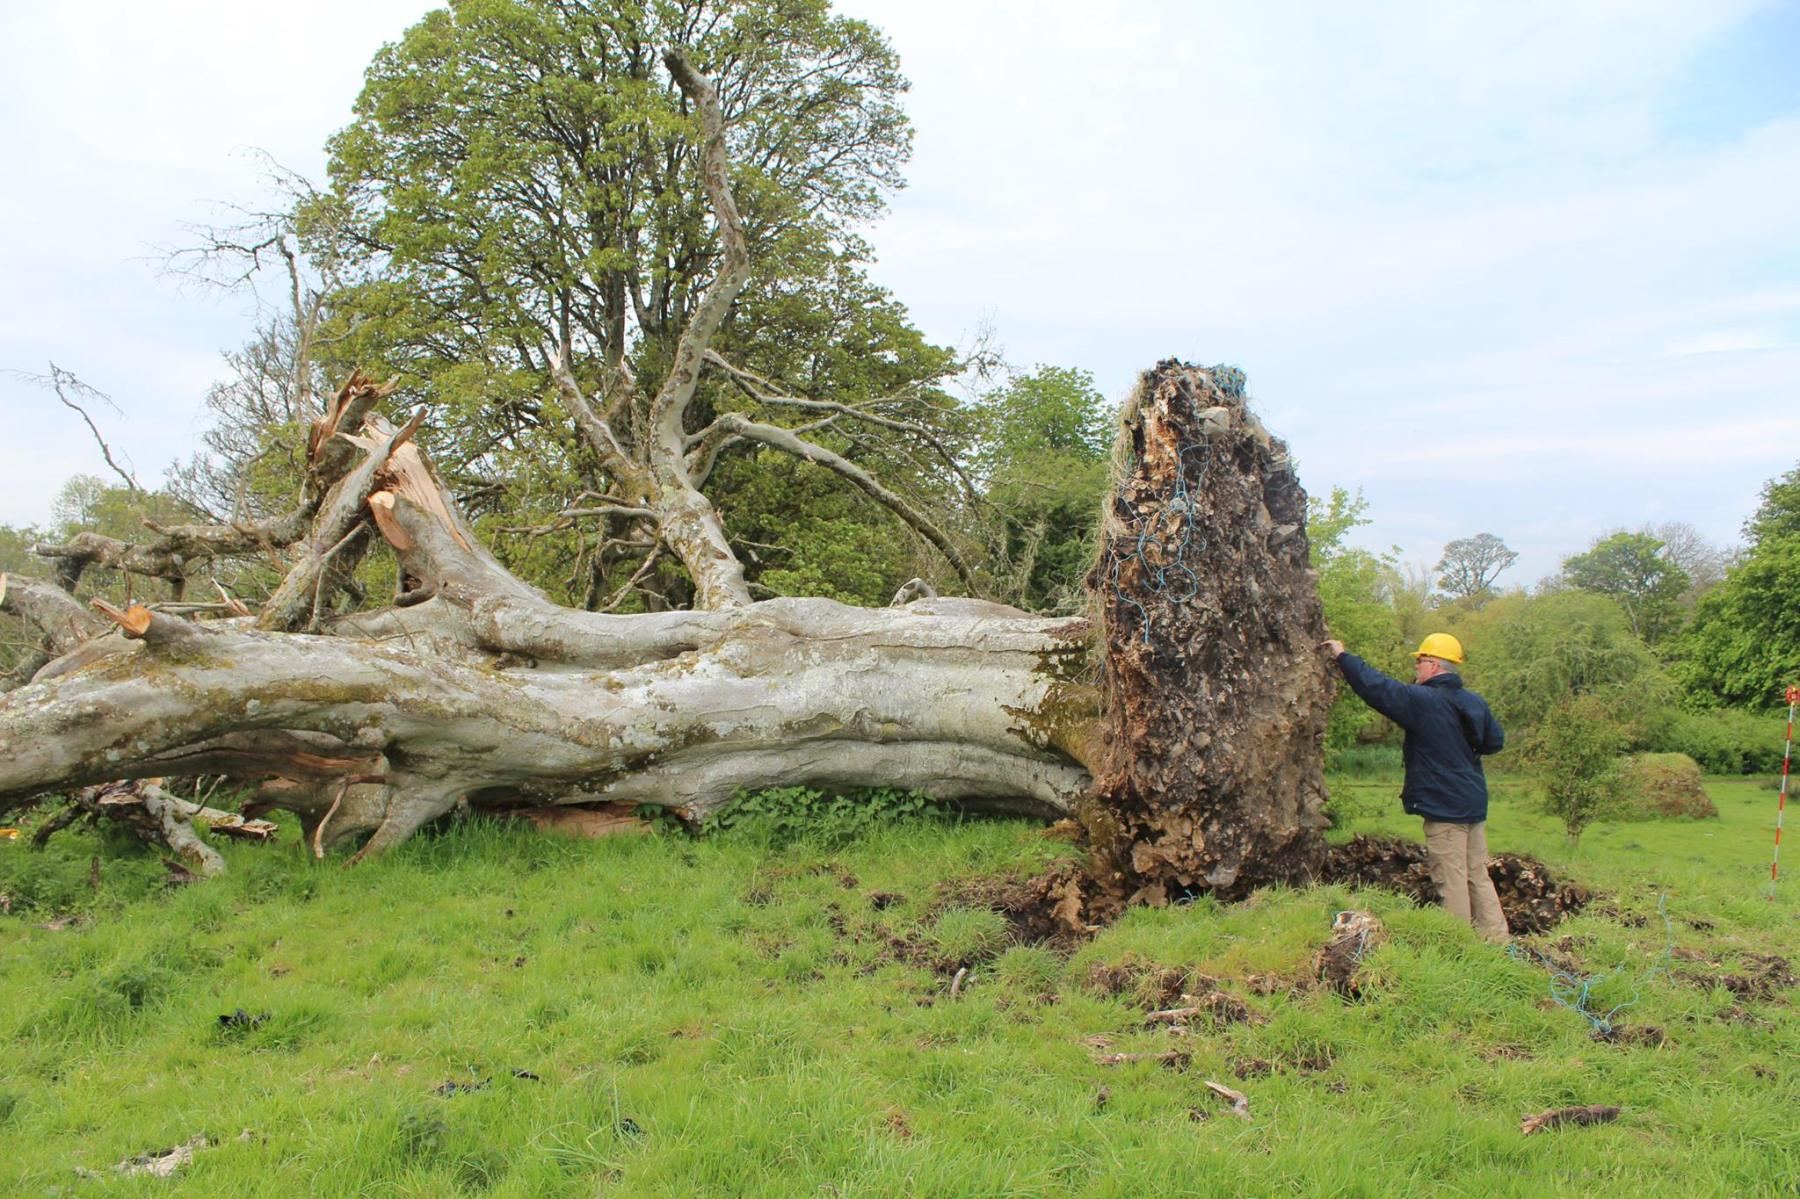 Fallen tree reveals medieval skeleton in Ireland